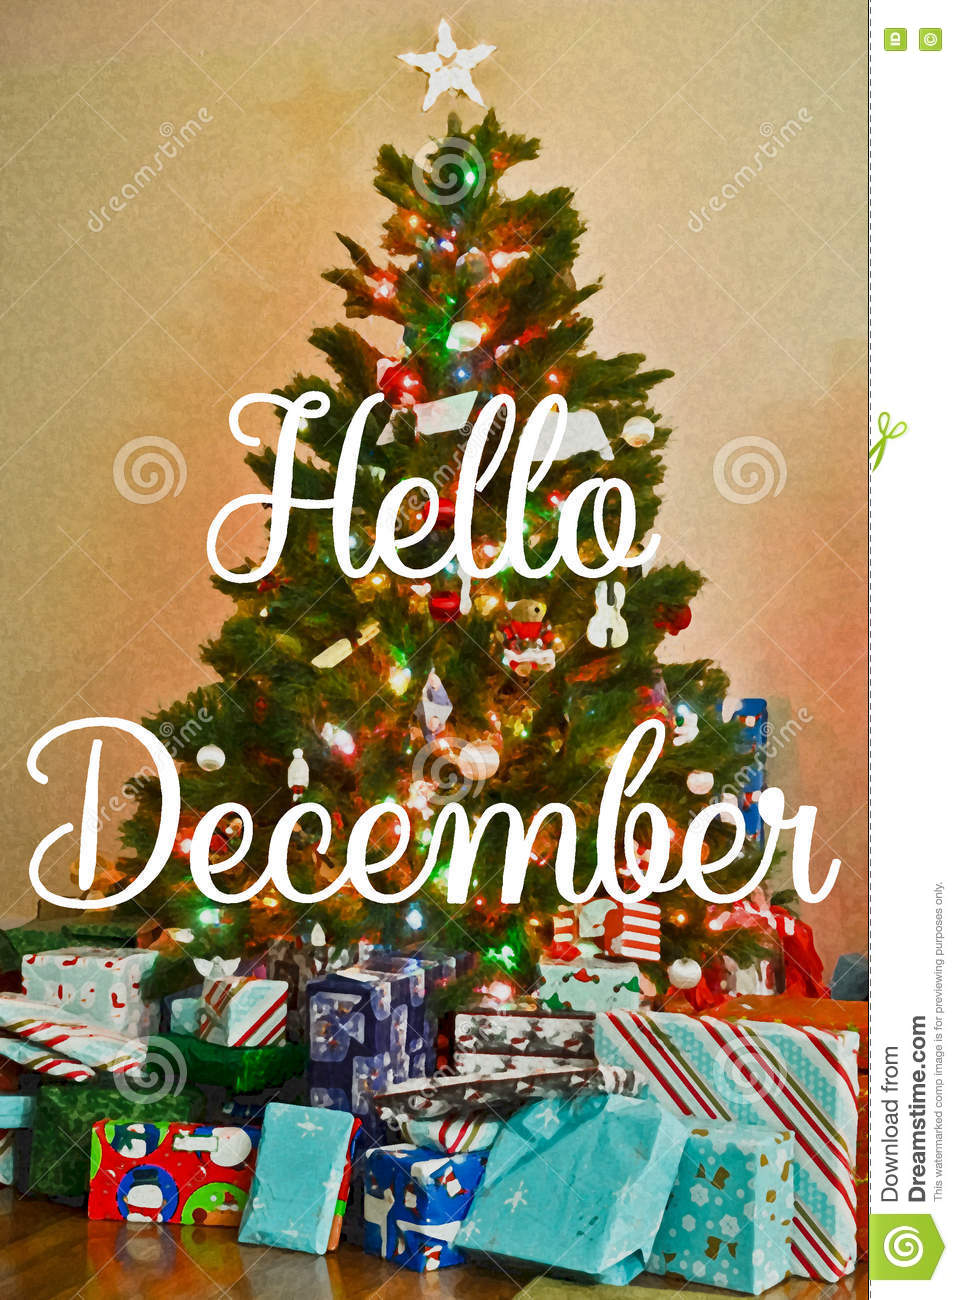 Download Hello December stock photo. Image of base, superposed - 79903038